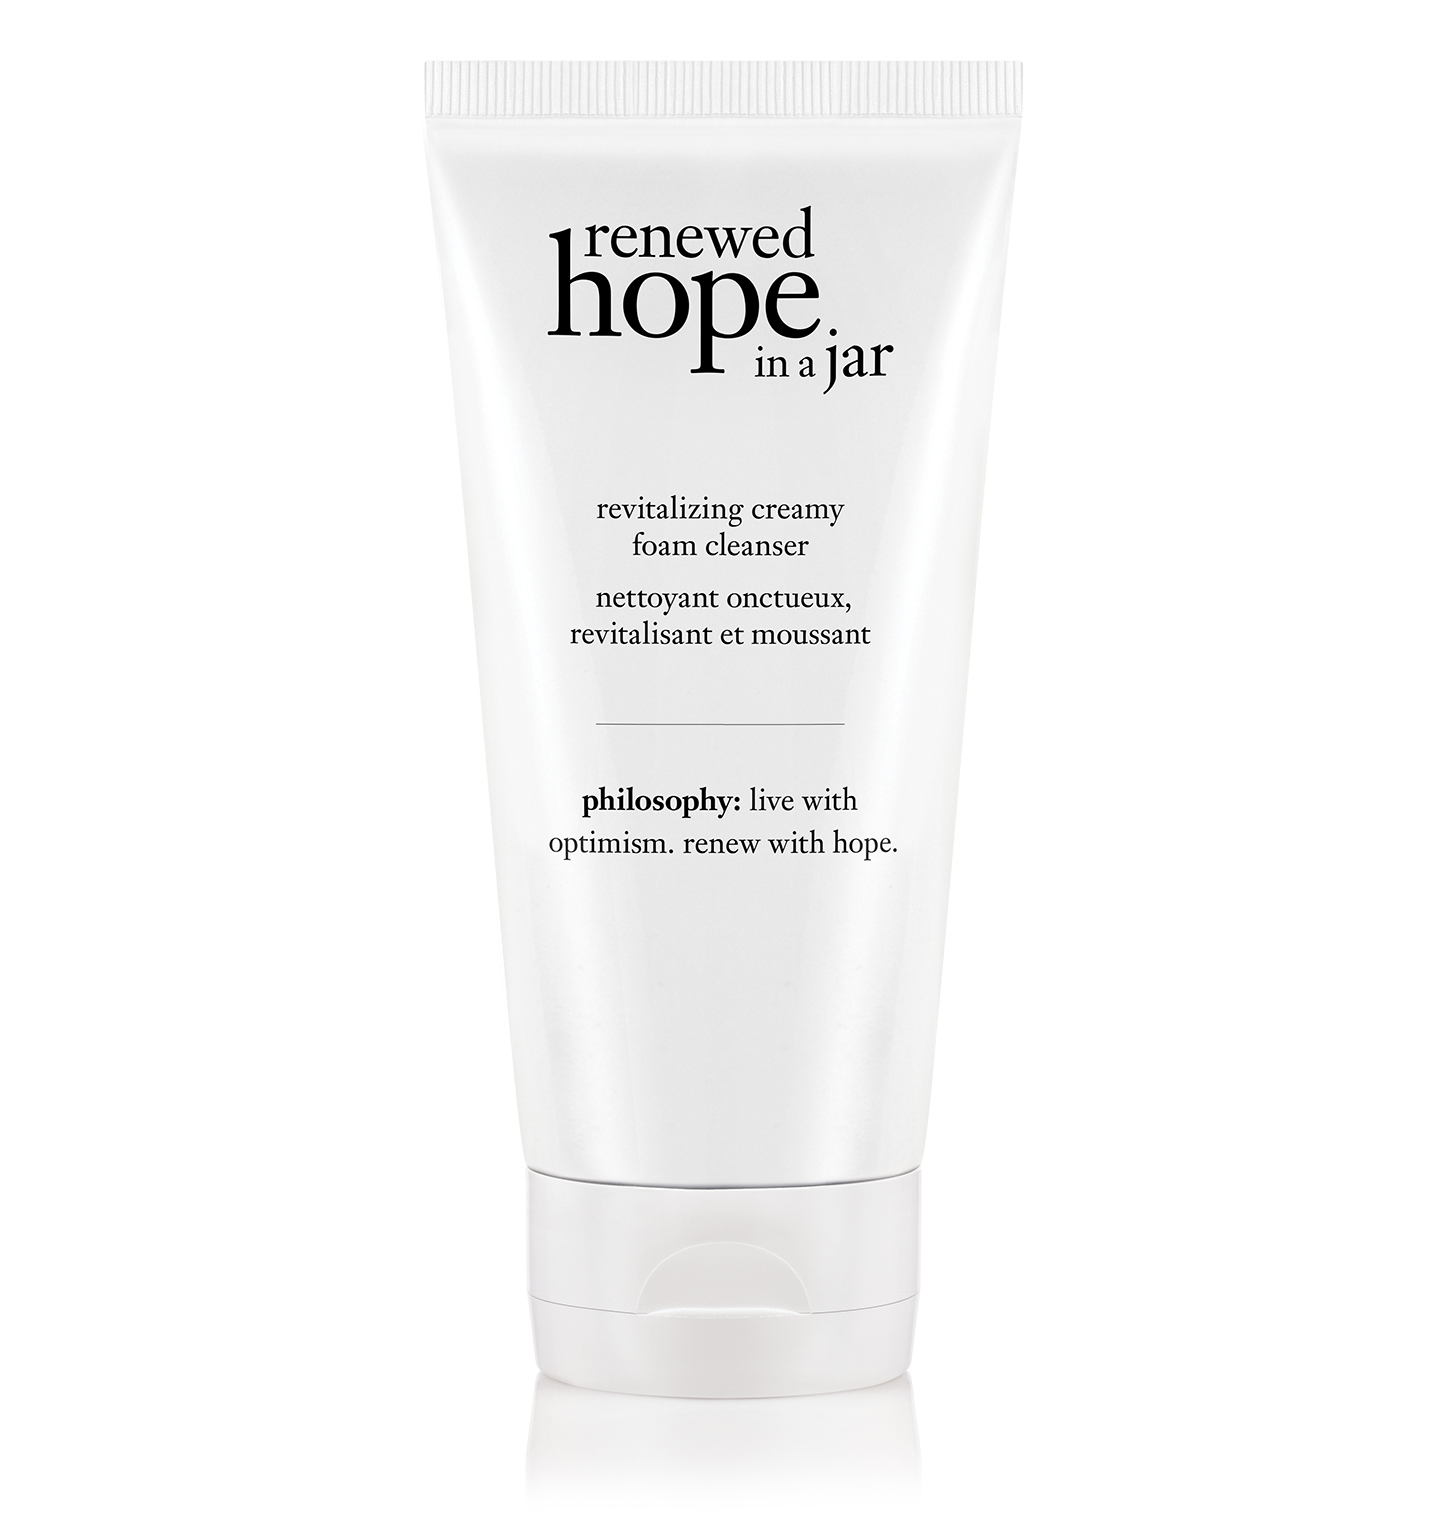 renewed hope in a jar foaming face wash